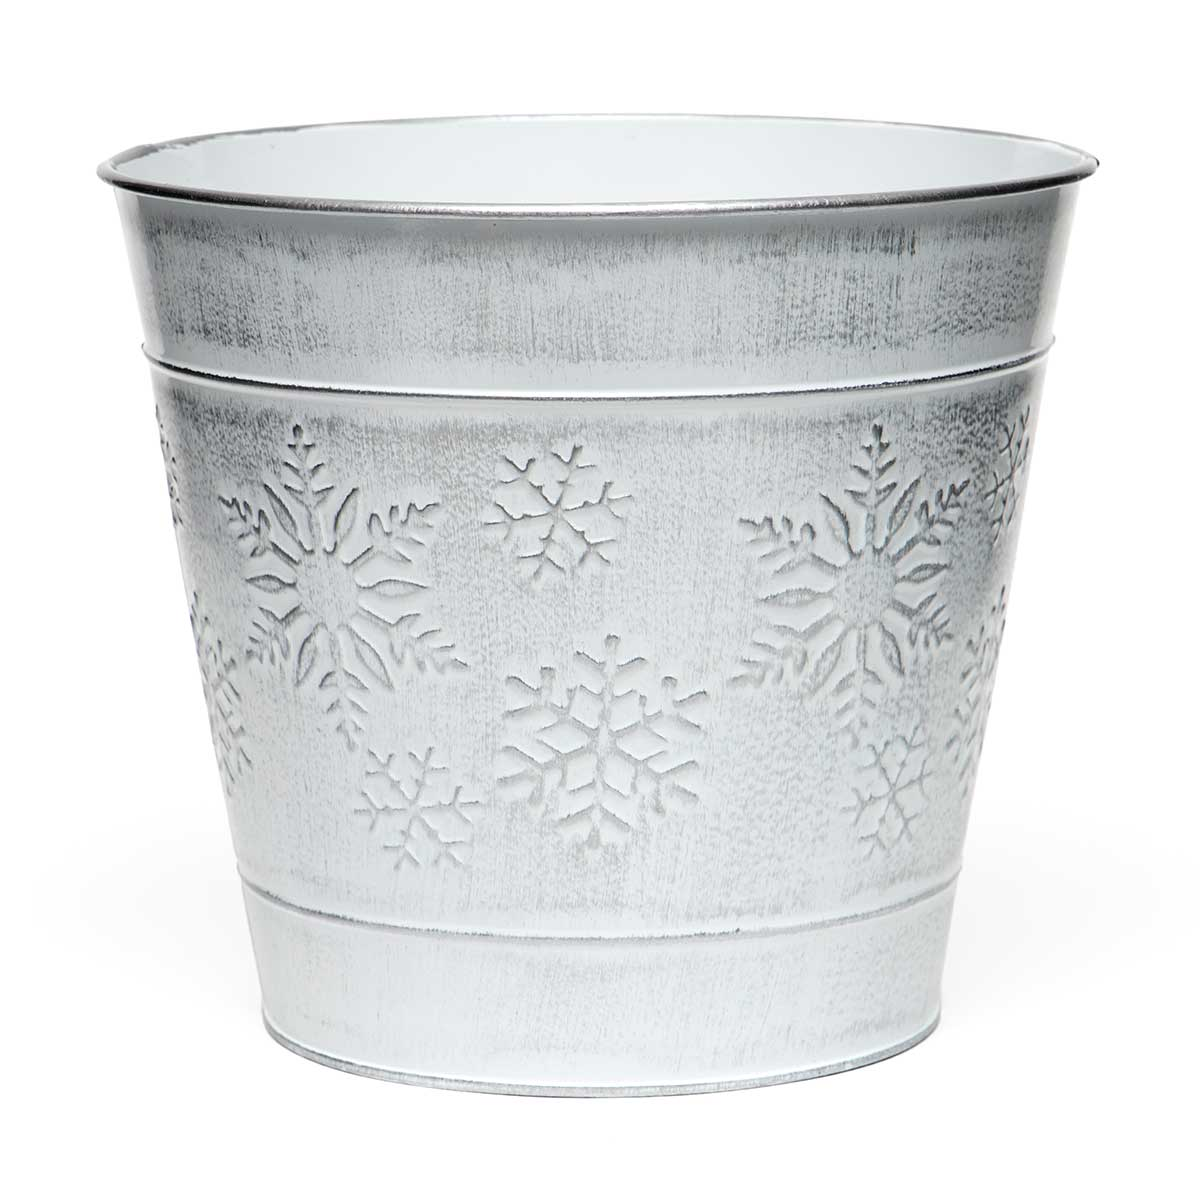 "SNOWFLAKE METAL BUCKET WHITEWASH/SILVER LARGE 8""X7.5"""